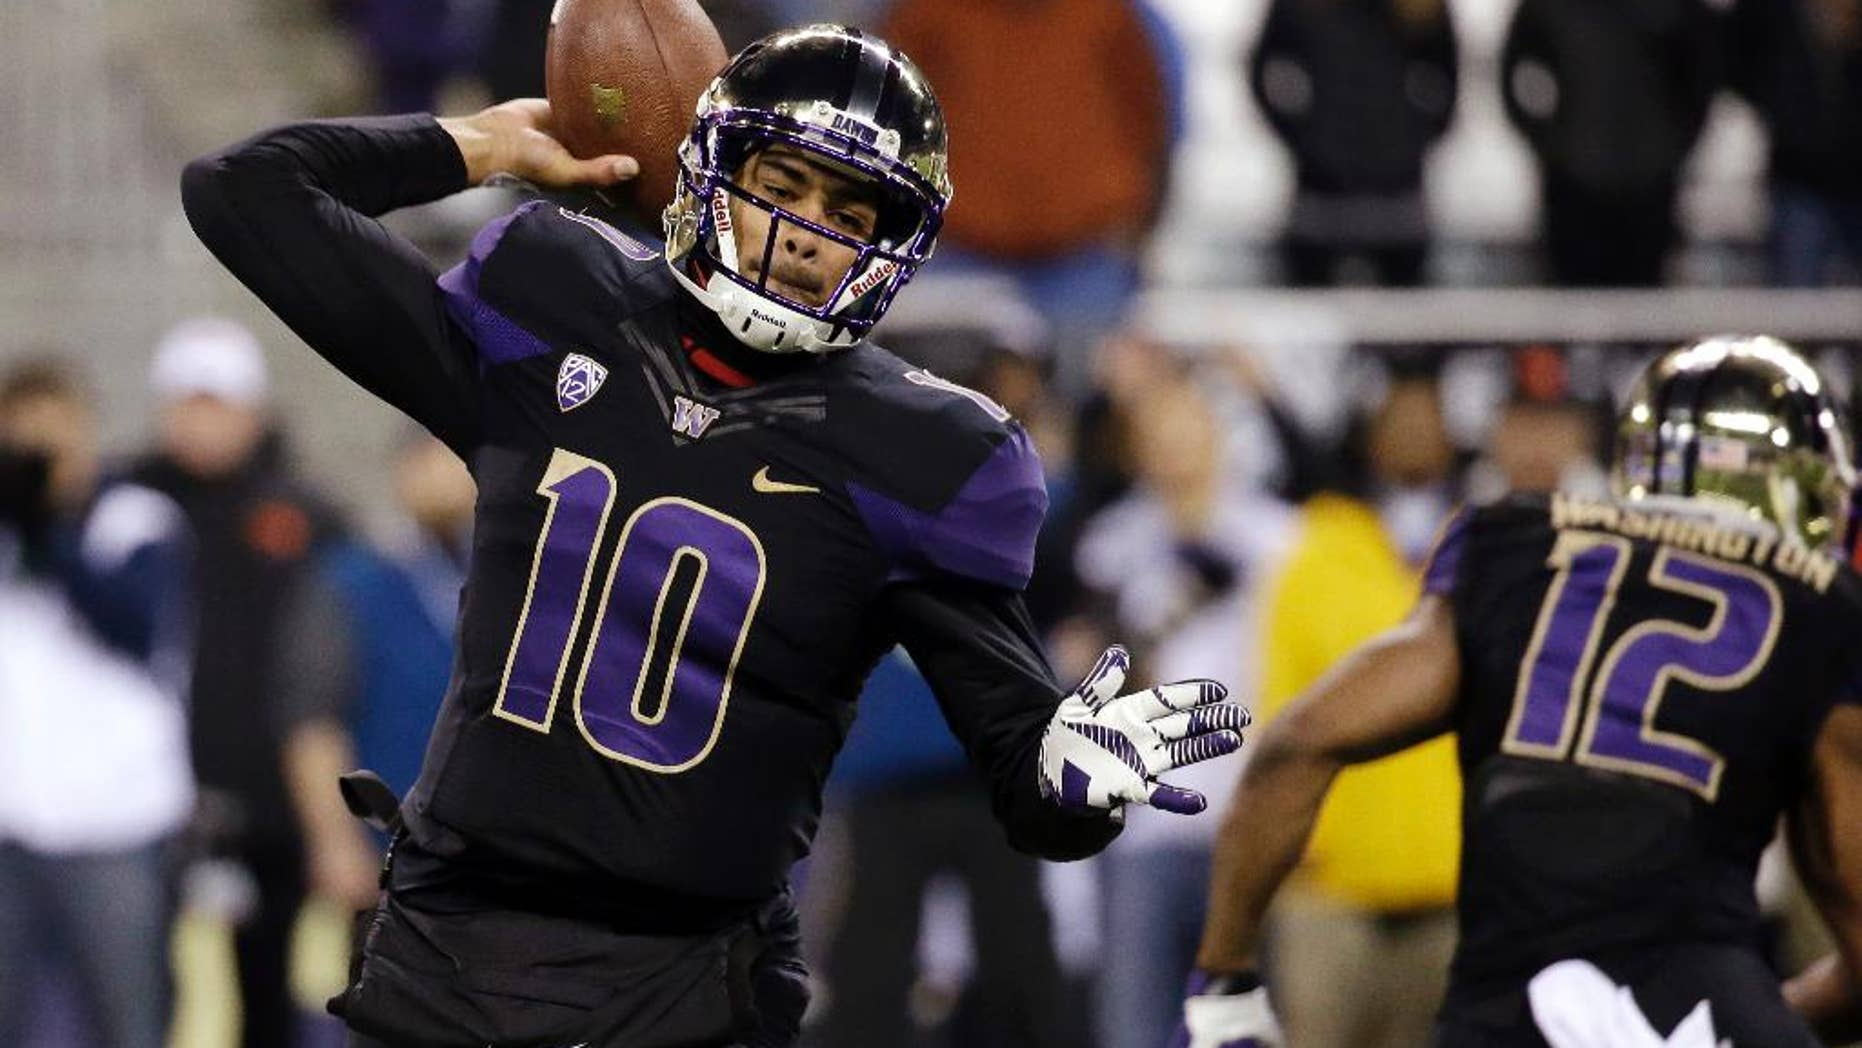 Washington quarterback Cyler Miles drops back to pass against Oregon State in the first of an NCAA college football game Saturday, Nov. 22, 2014, in Seattle. (AP Photo/Elaine Thompson)